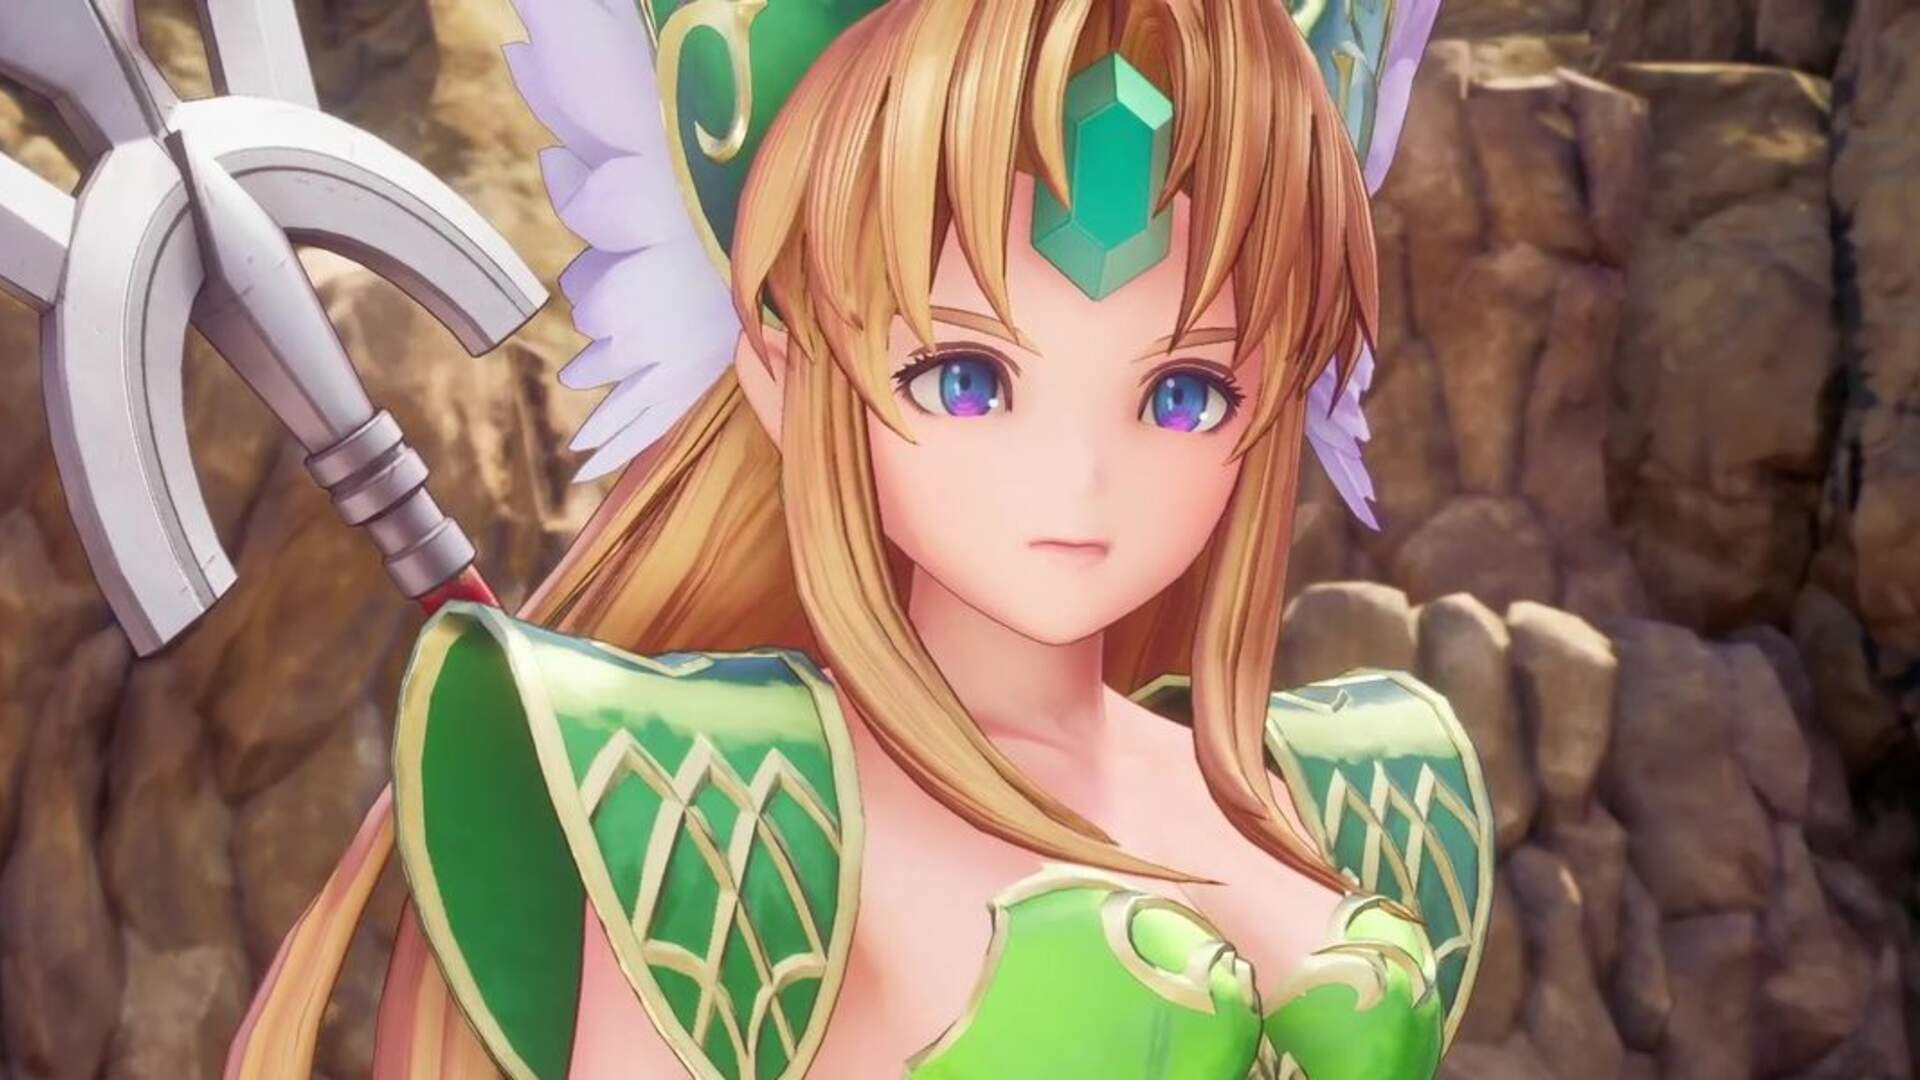 See How Trials of Mana's Early Scenes Compare Between the Original and the Remake